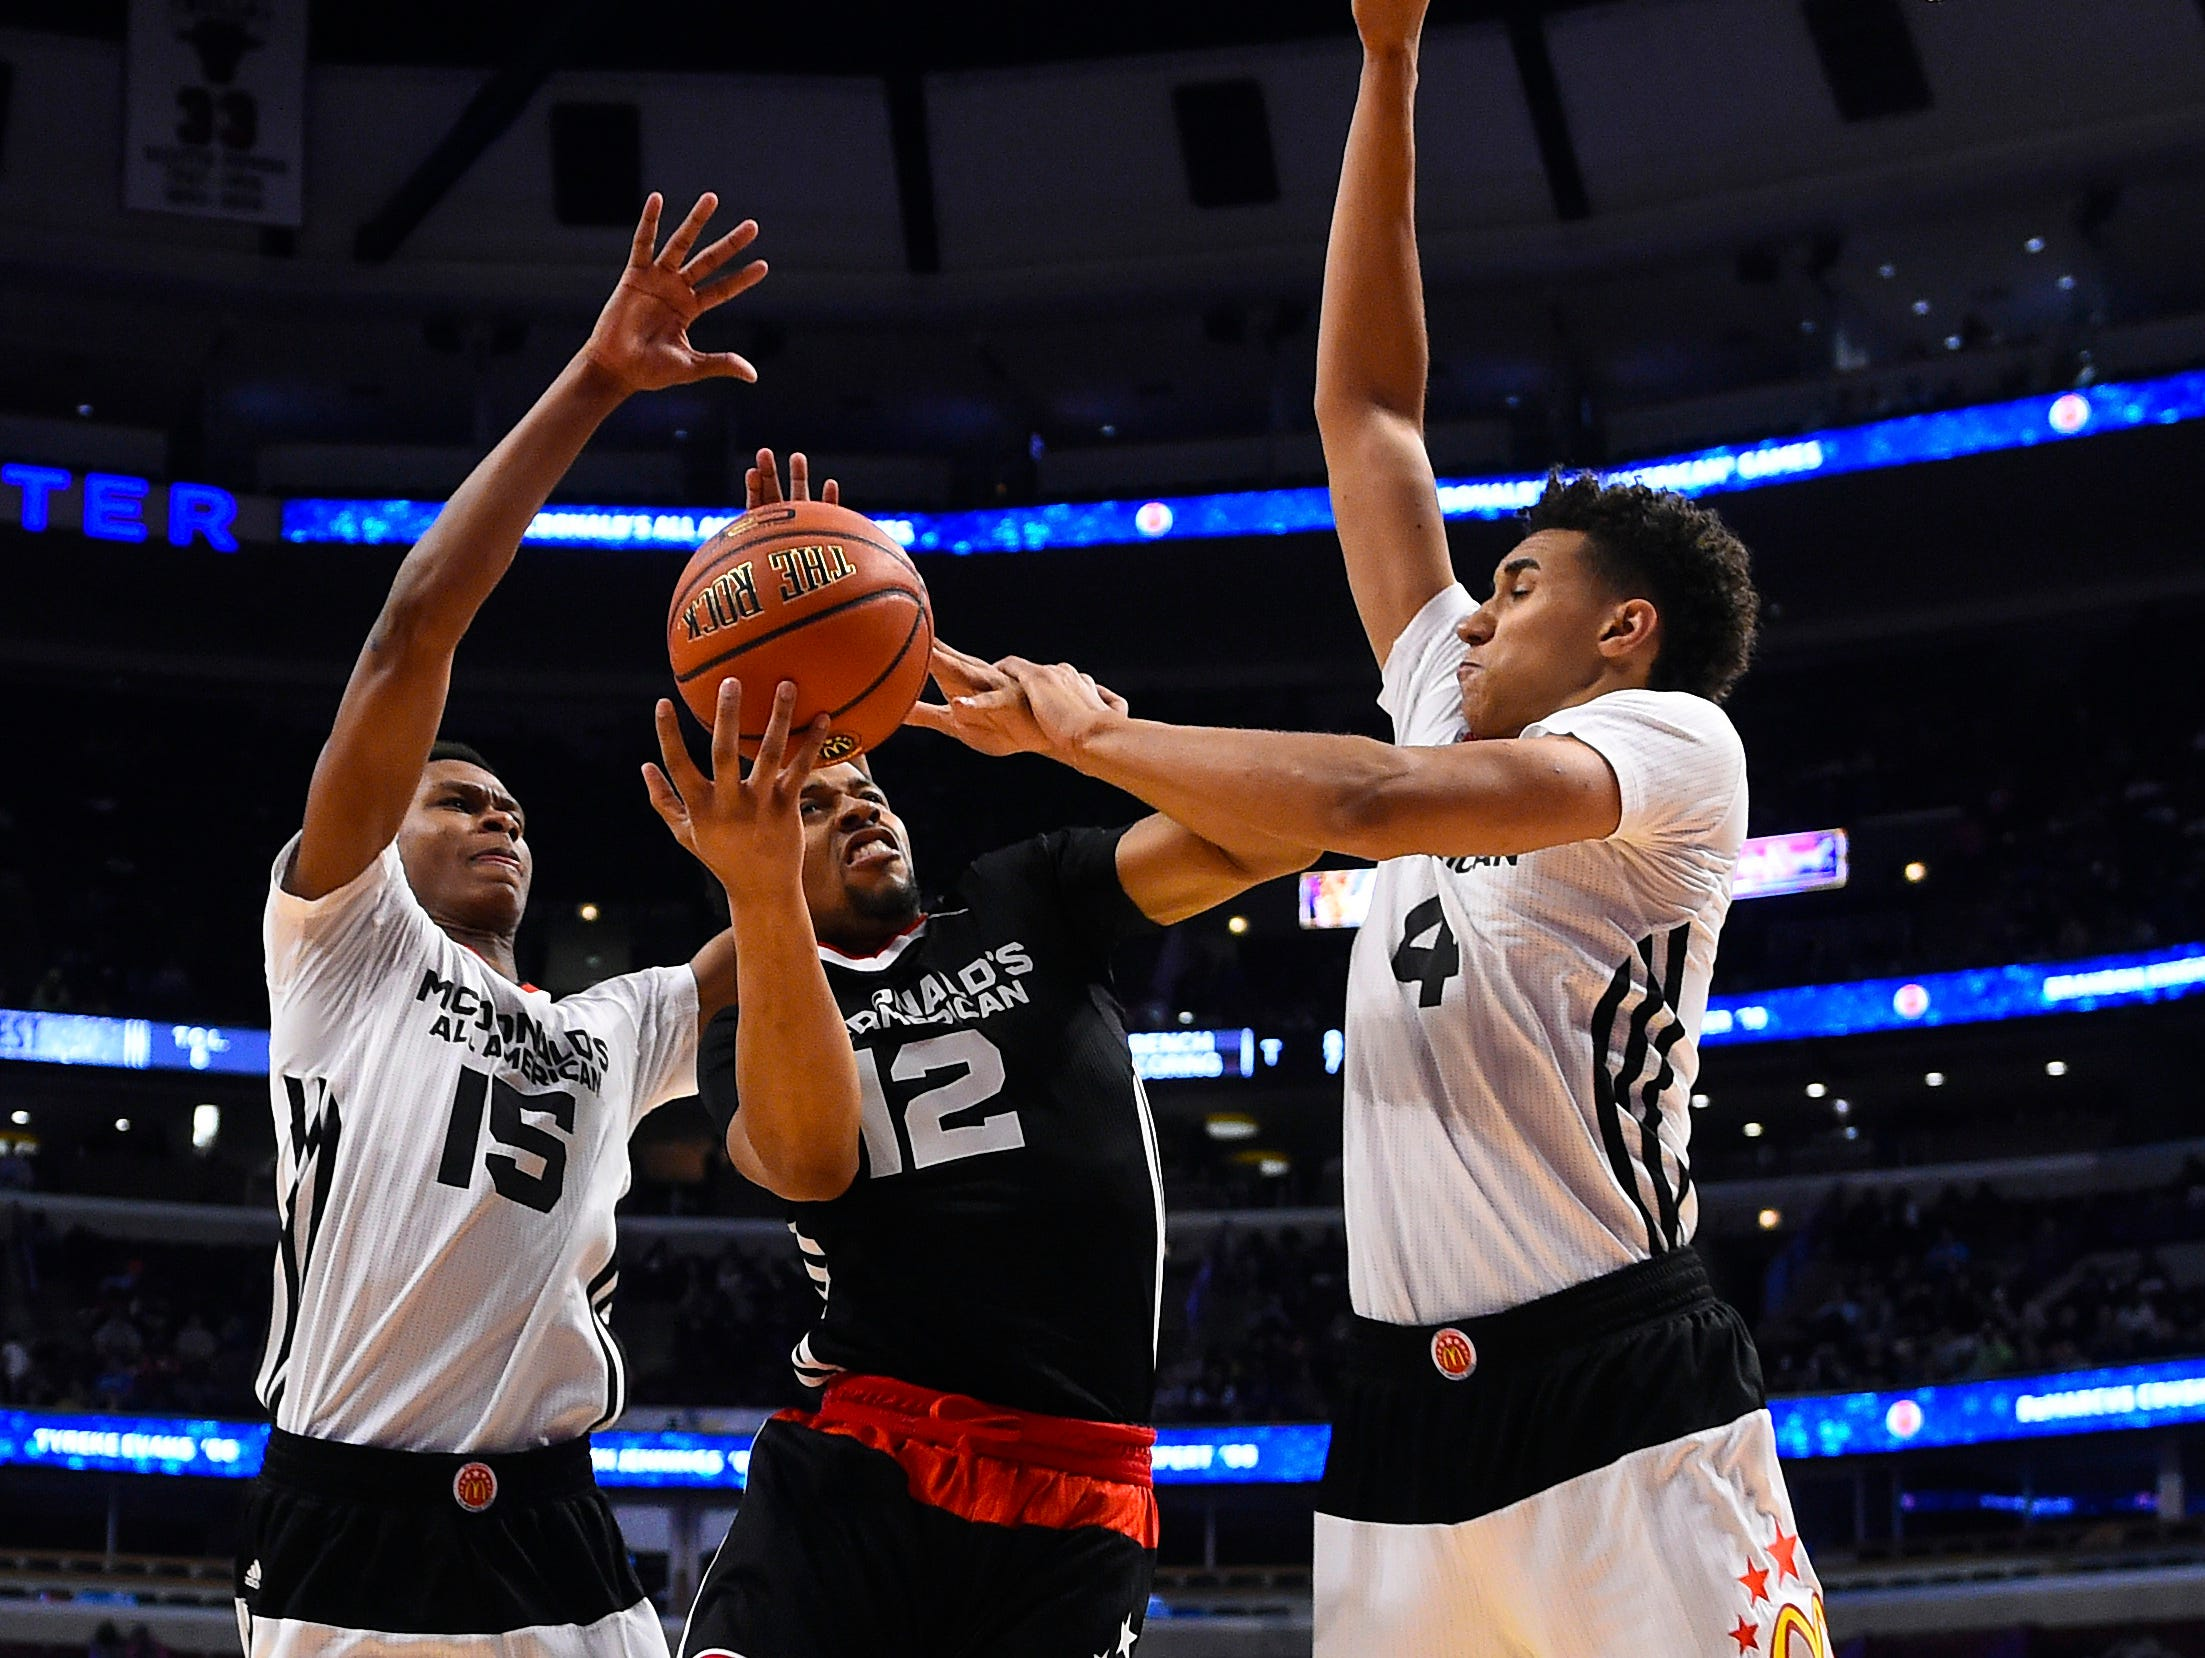 Apr 1, 2015; Chicago, IL, USA; McDonald's All American East guard Isaiah Briscoe (12) shoots the ball against McDonald's All American West guard PJ Dozier (15) and center Chase Jeter (4) during the first half at the United Center. Mandatory Credit: Mike DiNovo-USA TODAY Sports